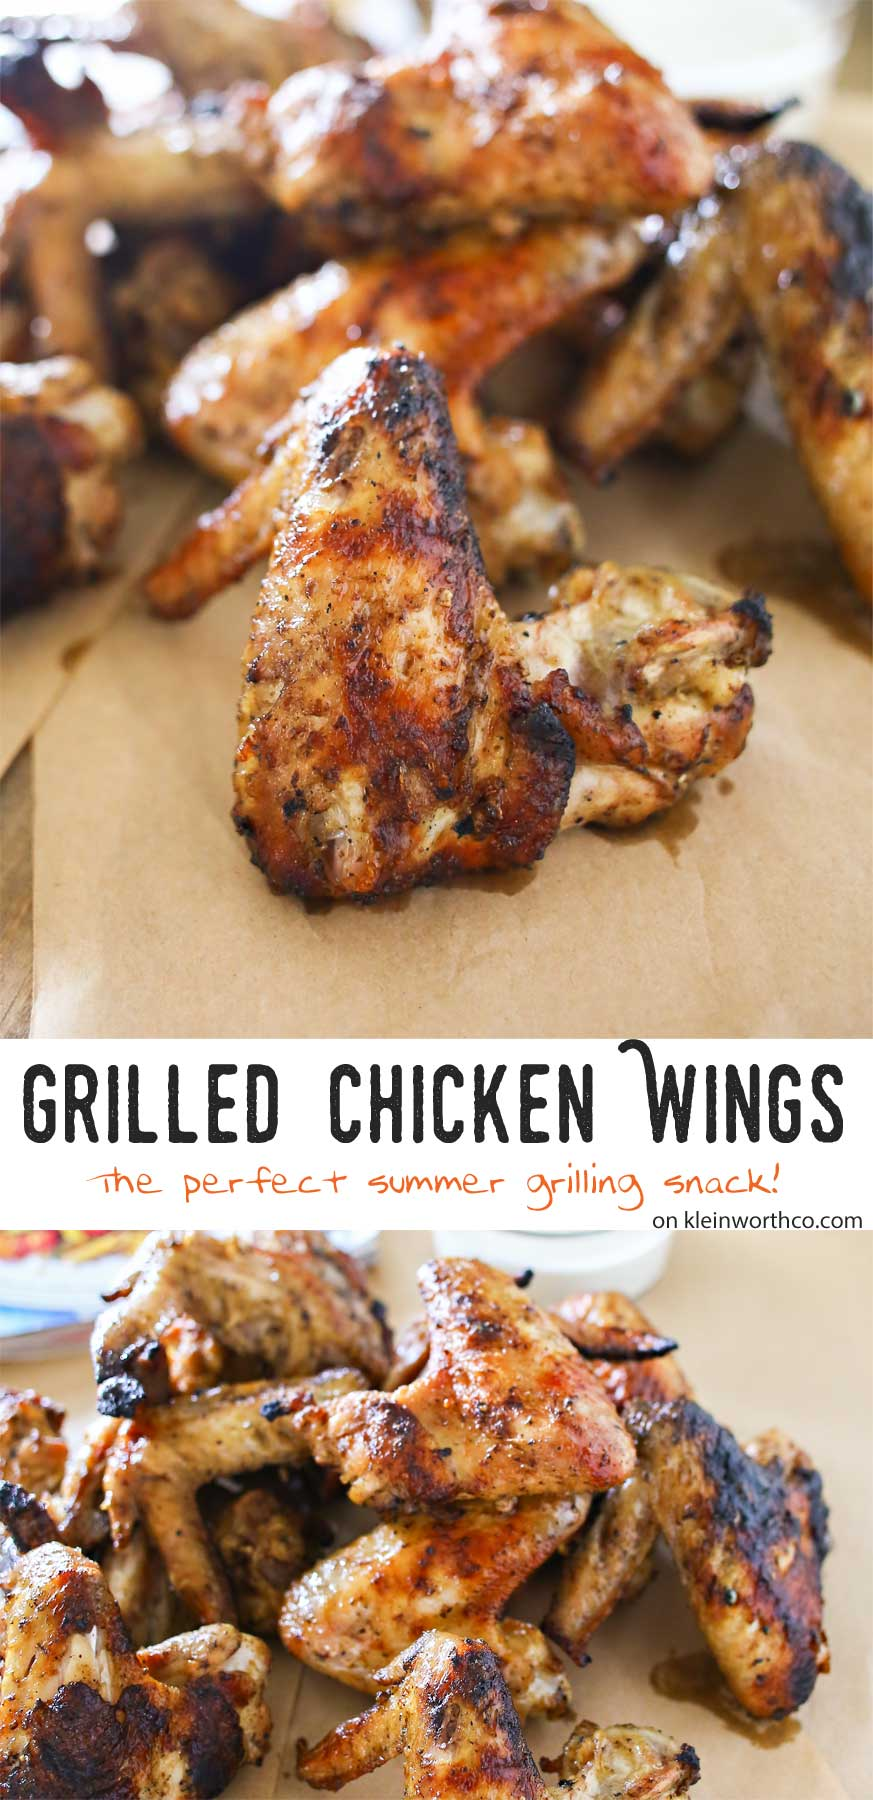 Grilled Chicken Wings- Seriously SO GOOD!